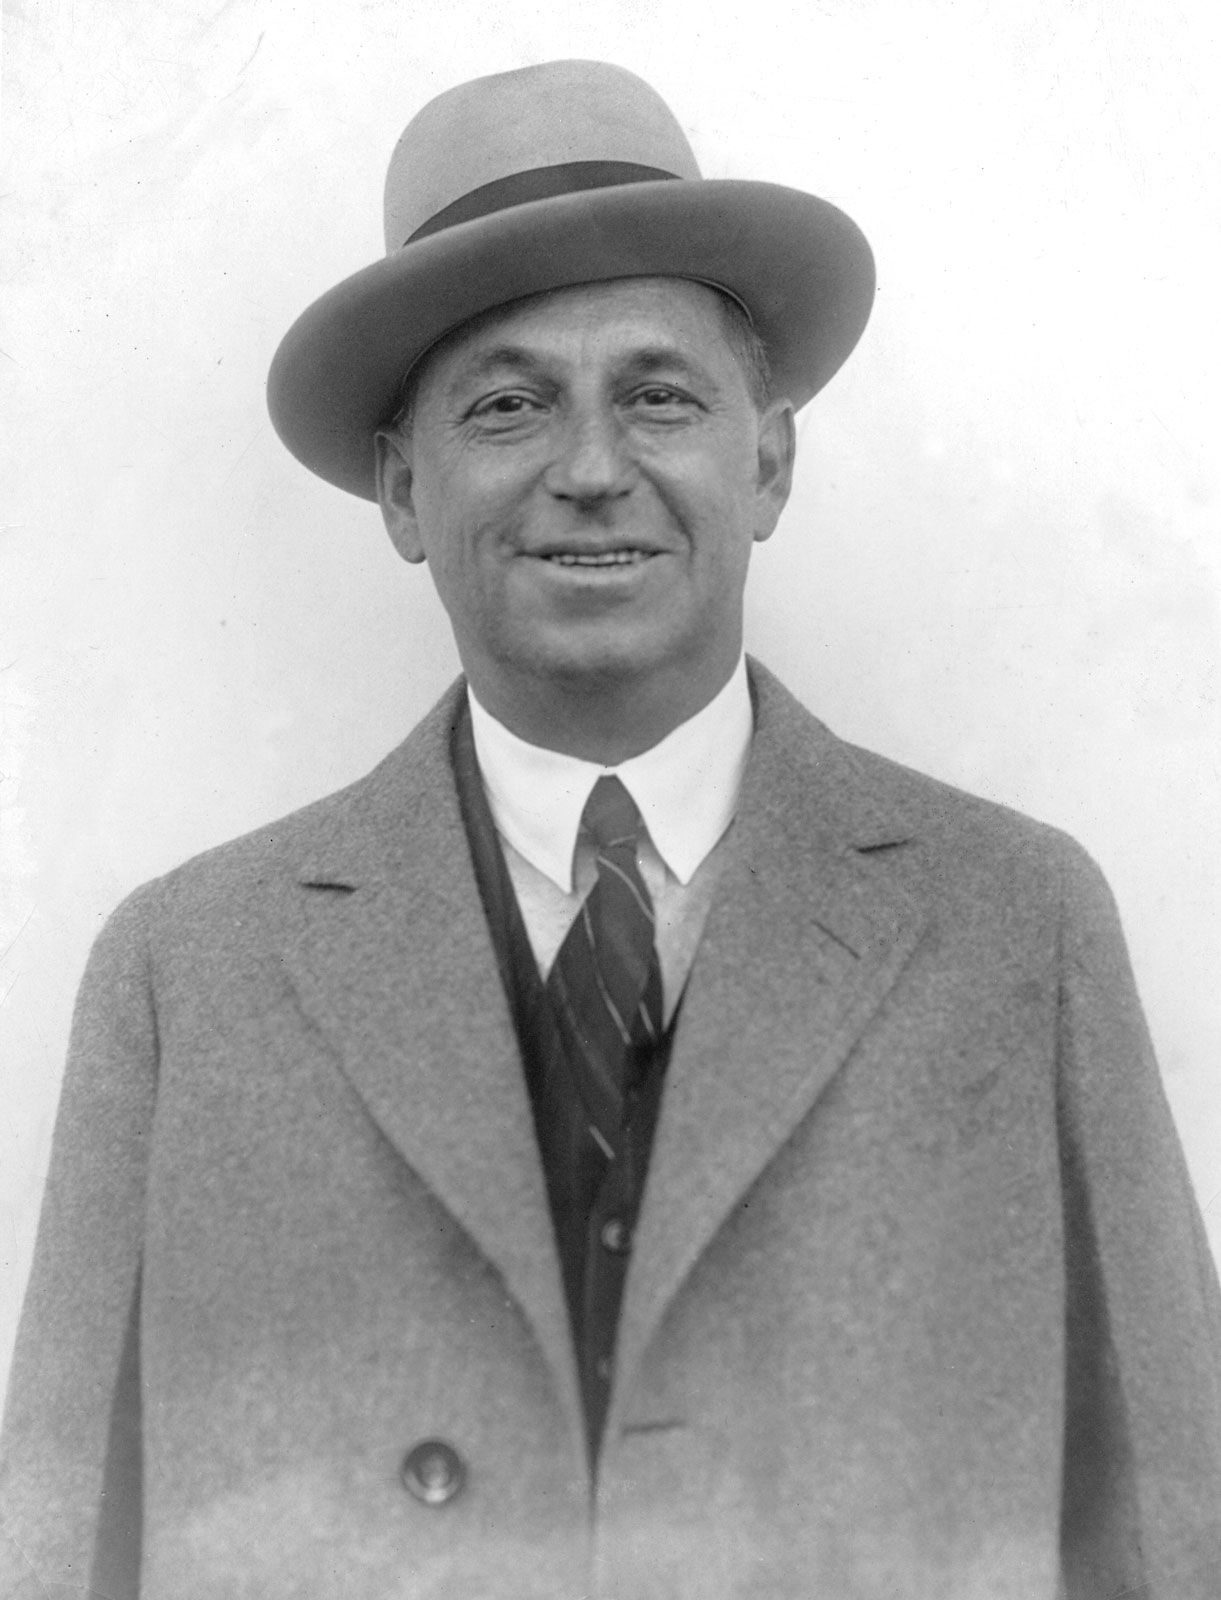 25 mars 1920 – Walter P. Chrysler quitte GM